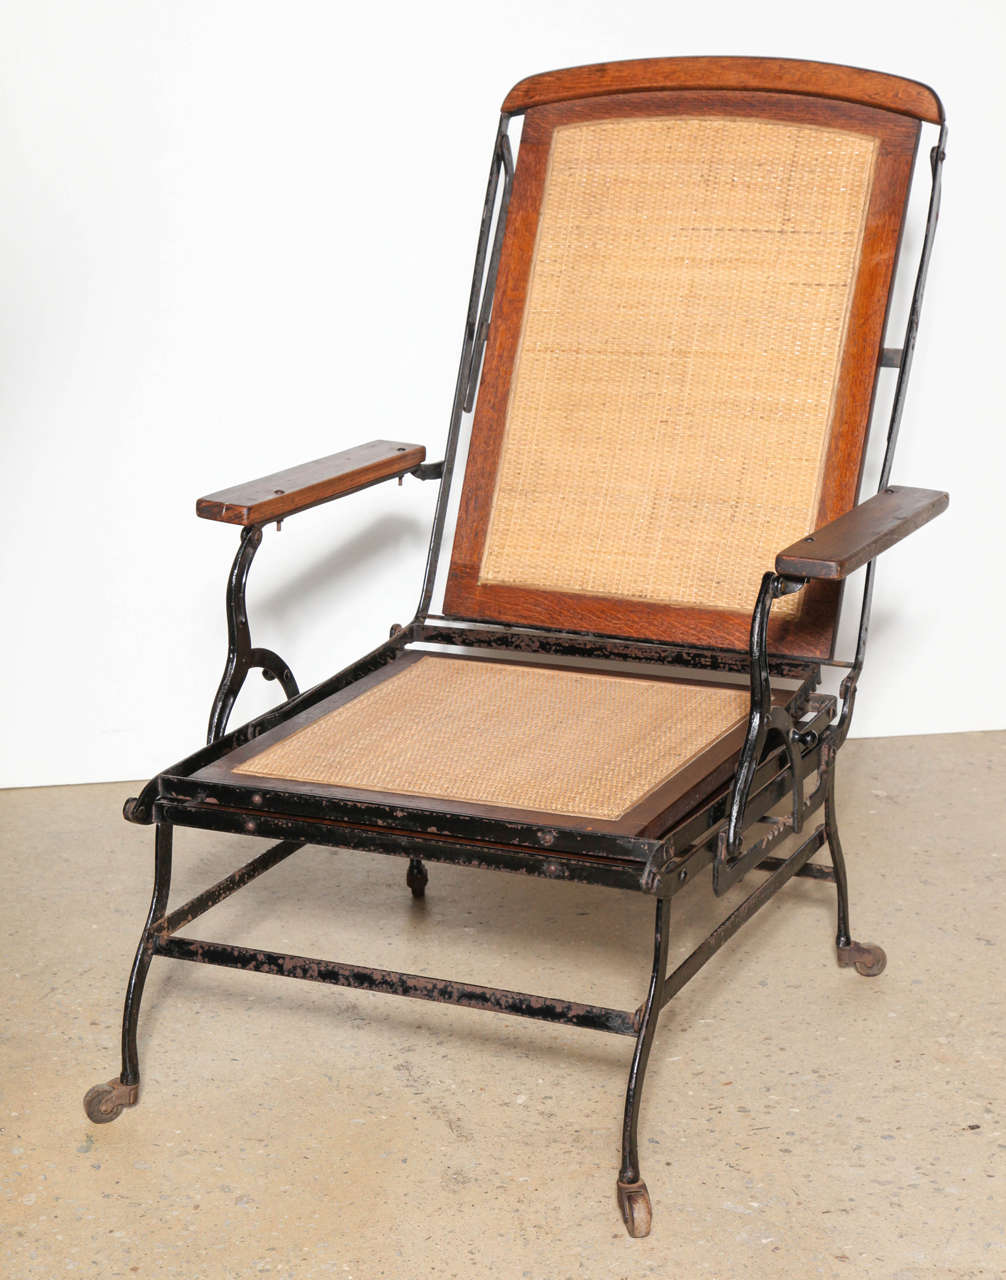 Cevedra Sheldon Walnut, Cane & Cast Iron Rolling Chaise Lounge Chair, C. 1876 For Sale 1